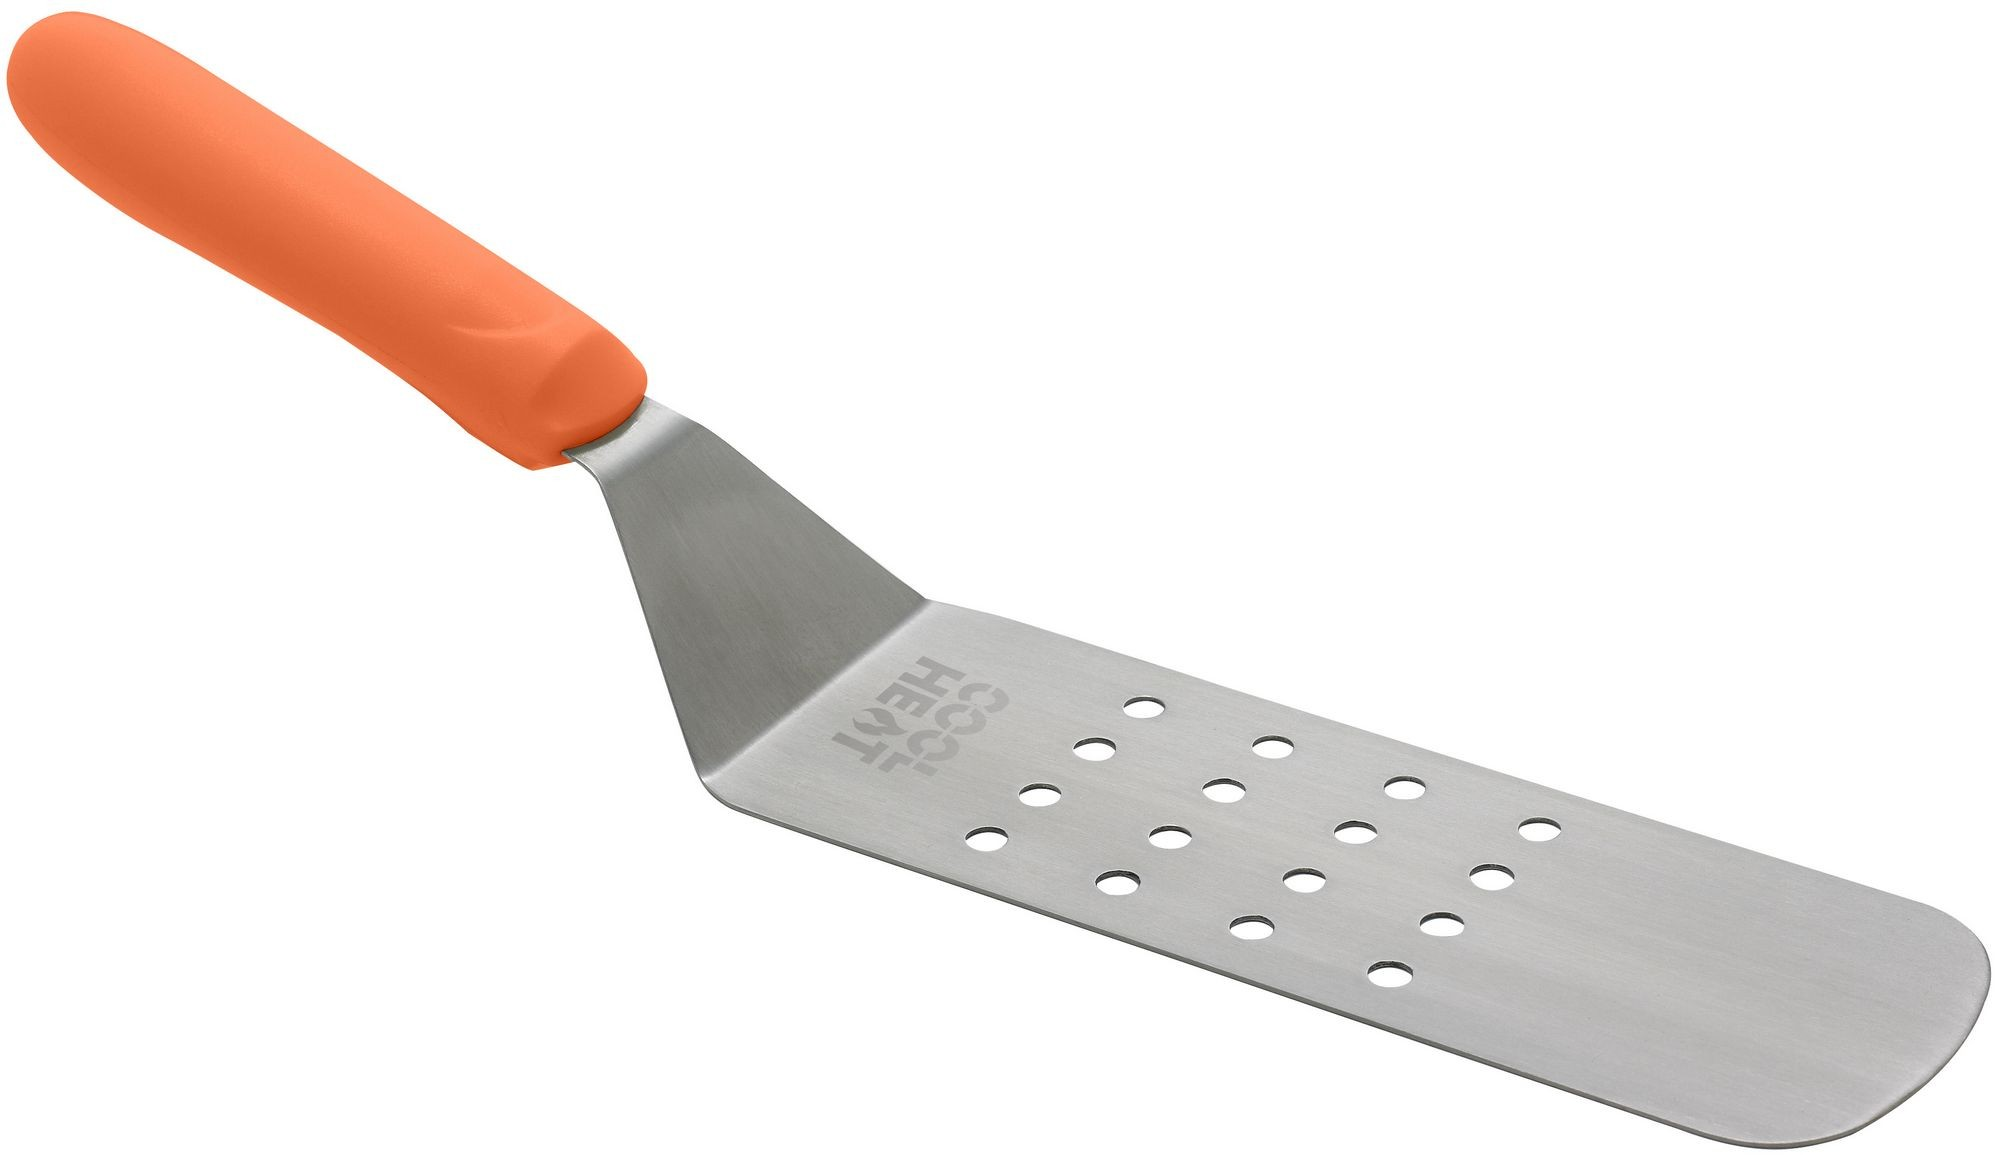 "Winco TNH-91 Stainless Steel Perforated Offset Flexible Turner with Orange Nylon Handle, 8-1/4"" x 2-7/8"""